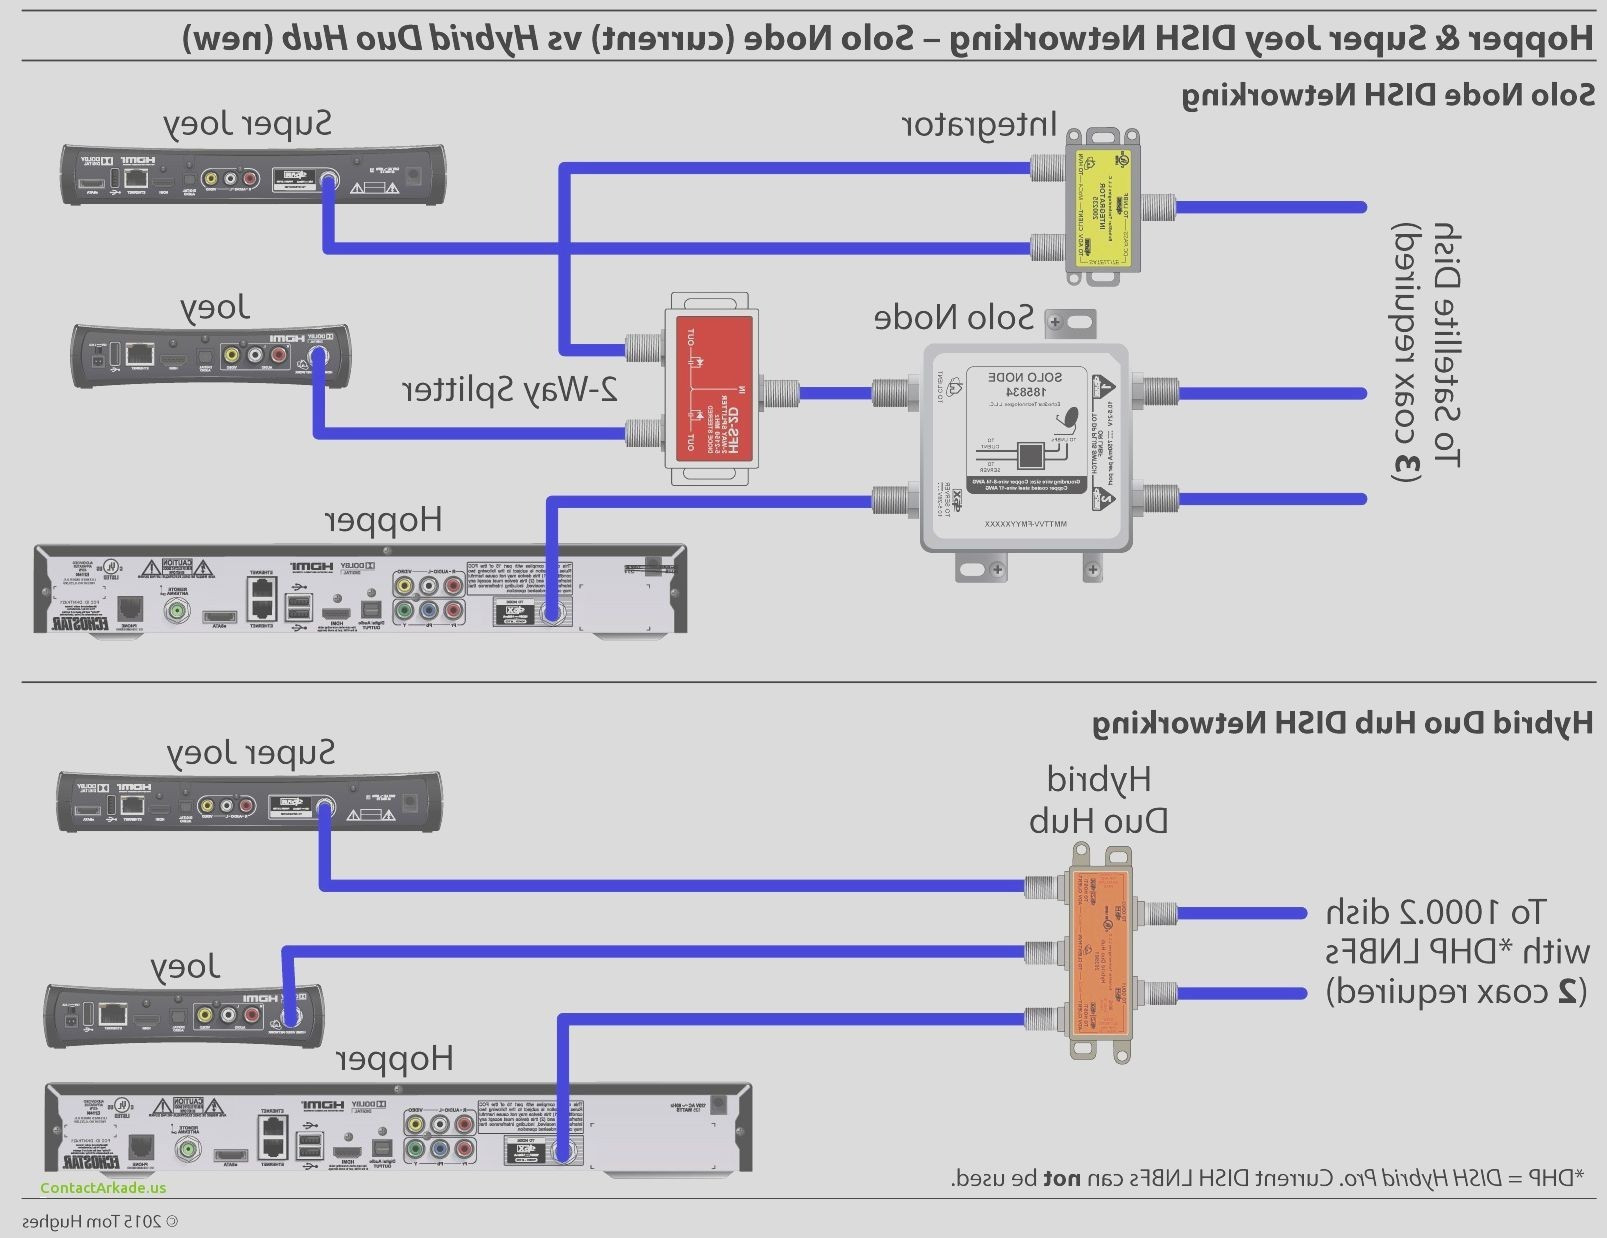 Cat5E Wiring Diagram A Or B Perfect Wiring Diagram For A Cat5 Cable - Wiring Diagram For Cat5 Cable